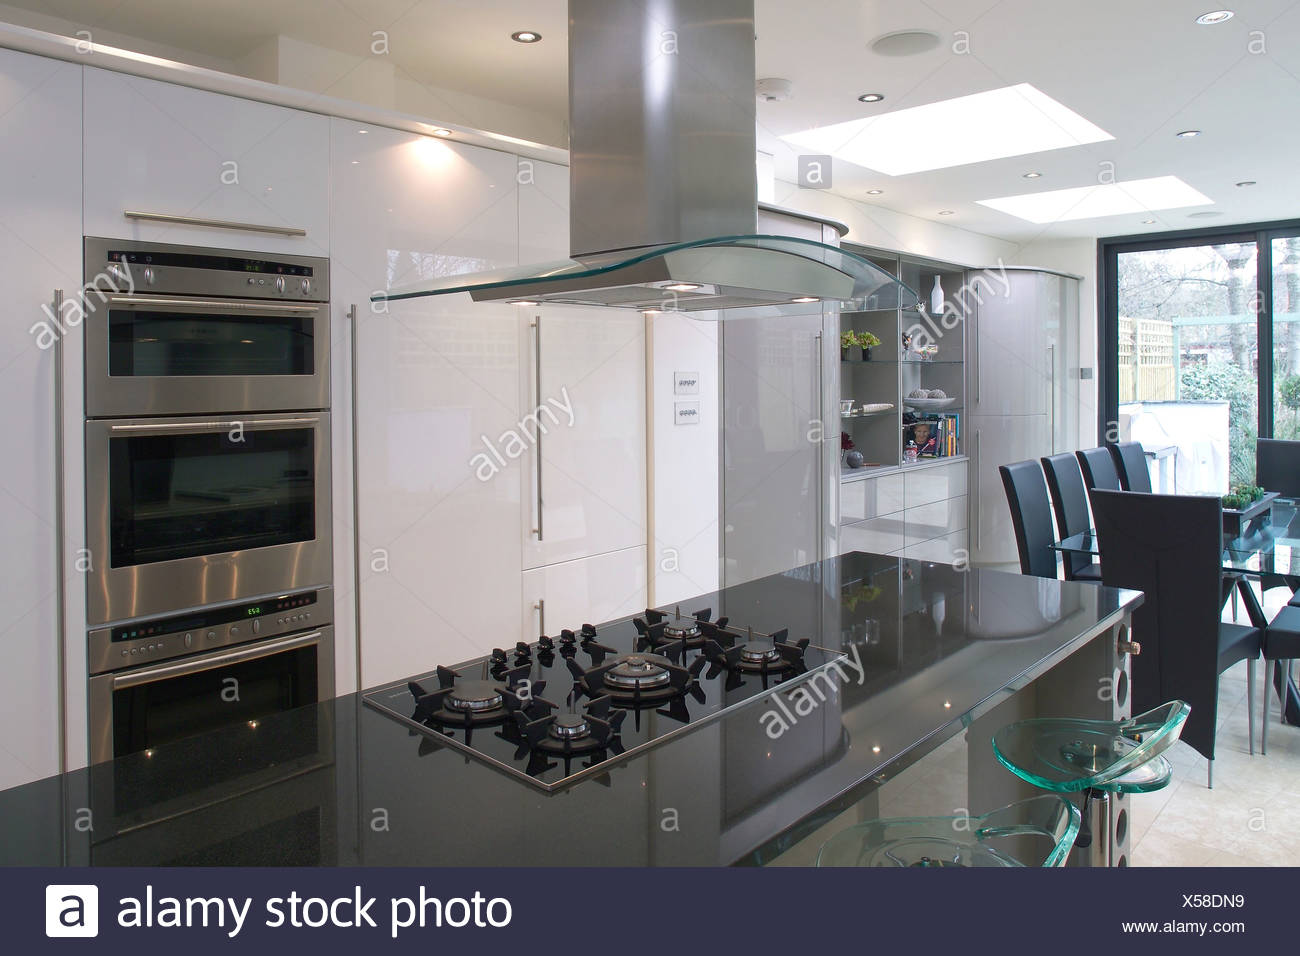 Oven In Island Unit Extractor Fan Kitchen Island Stock Photos And Extractor Fan